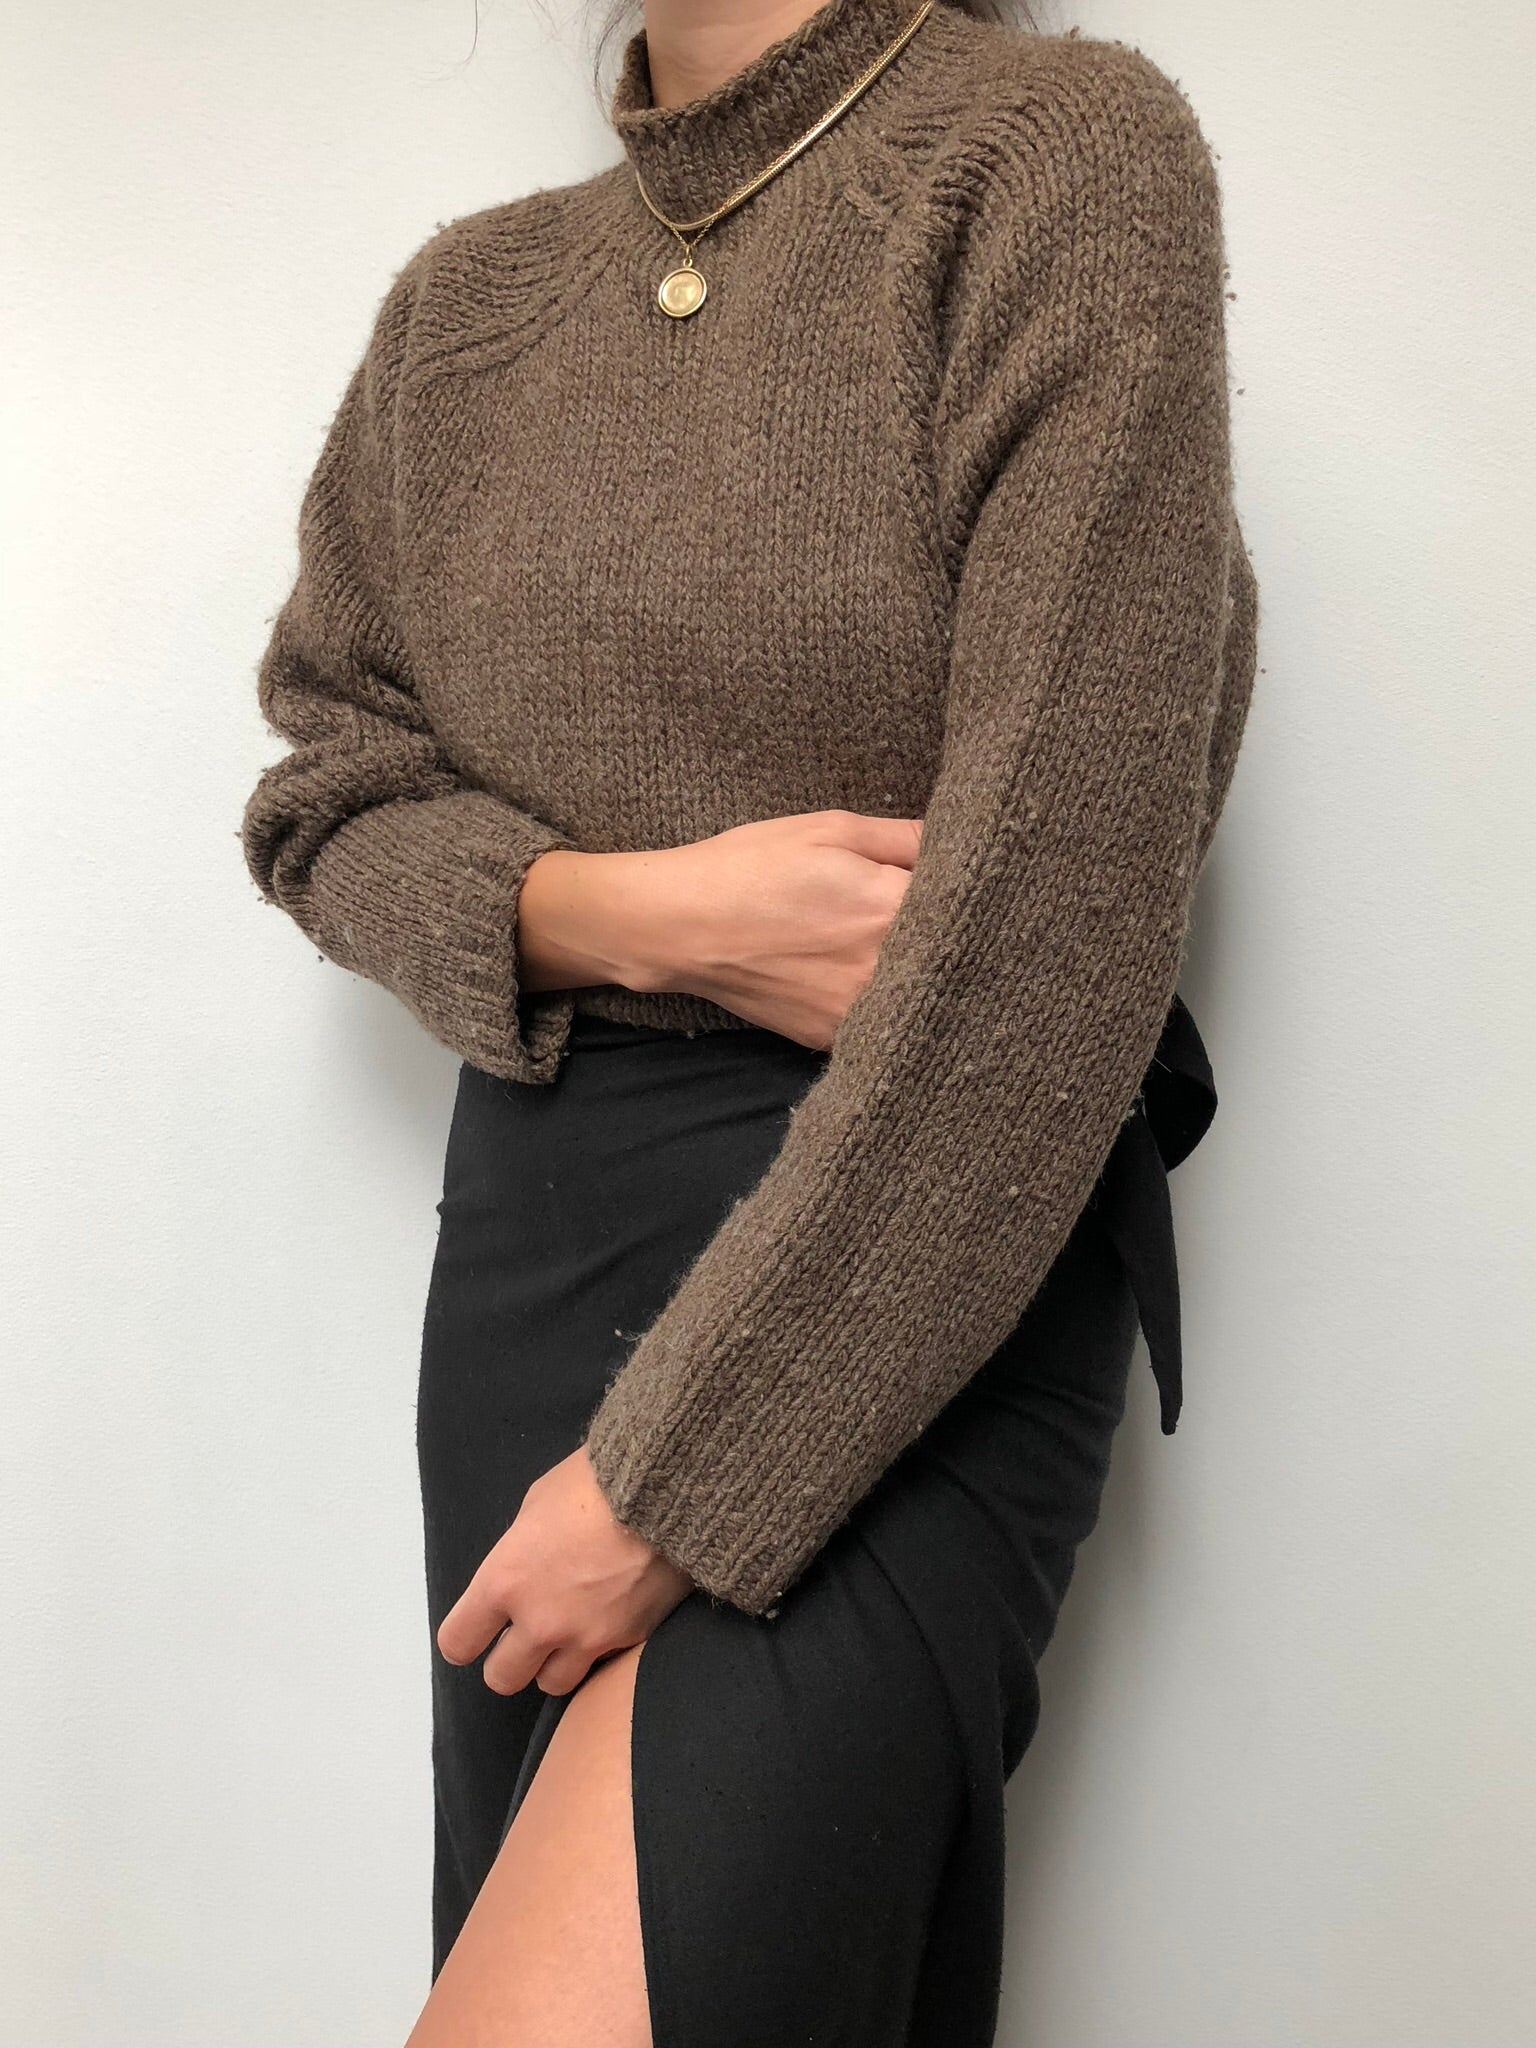 Vintage Cocoa Wool Knit Mock Neck